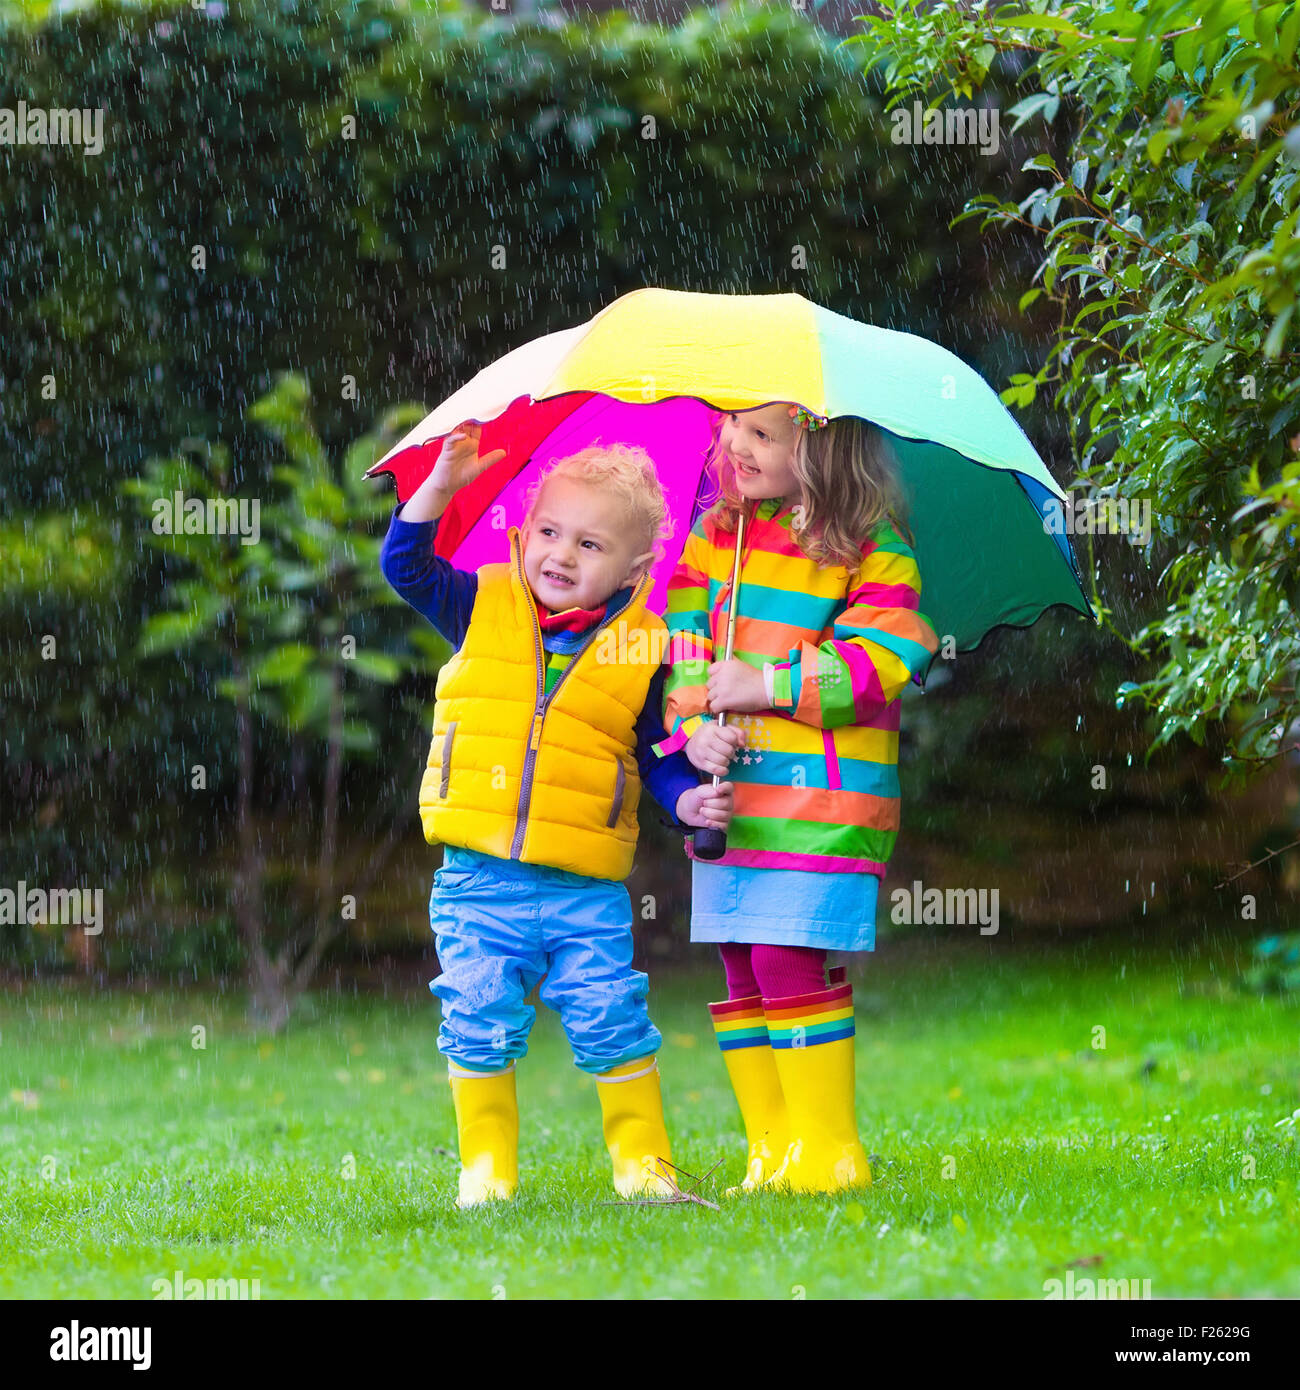 Little Girl And Boy With Colorful Umbrella Playing In The